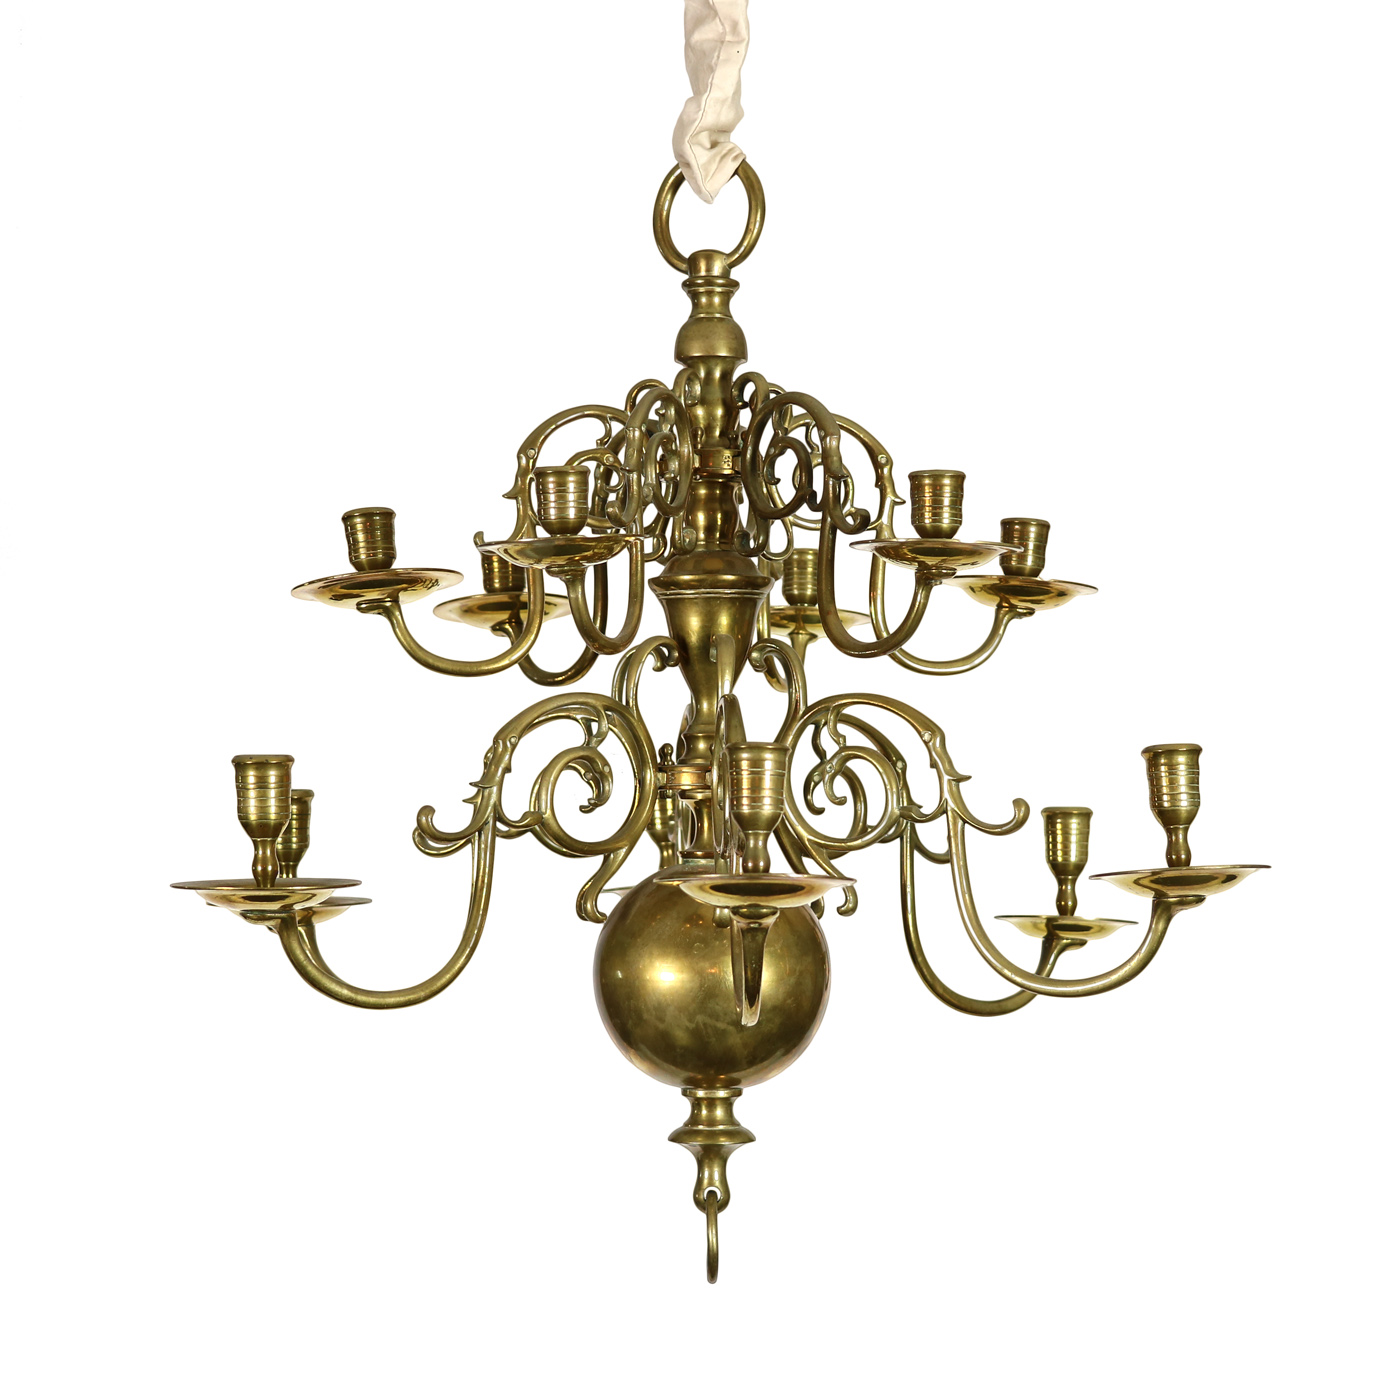 Two Tiered Twelve Light Dutch Brass Chandelier 19th Century